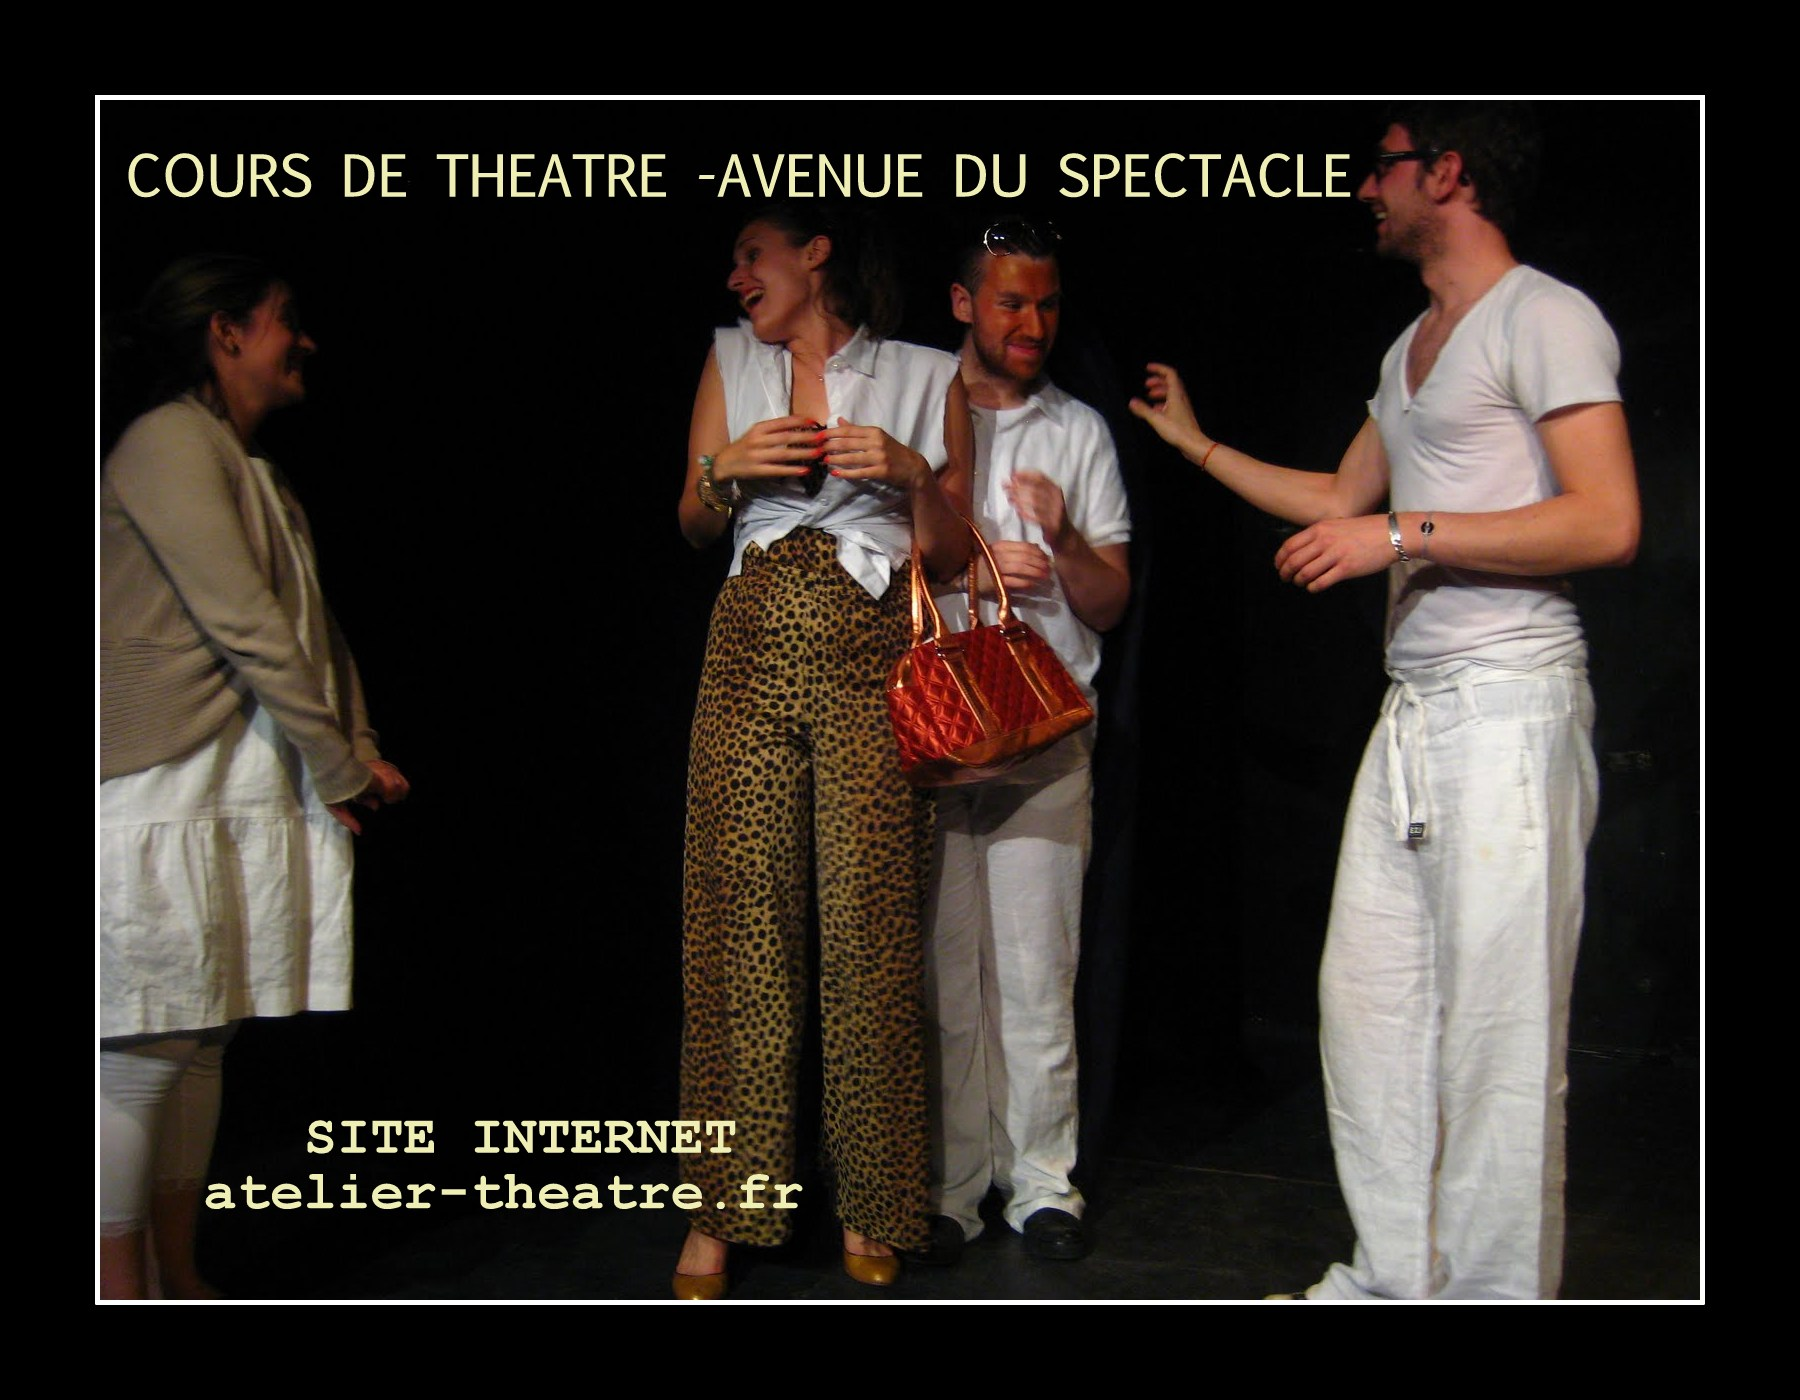 Cours de theatre Paris / Avenue du spectacle